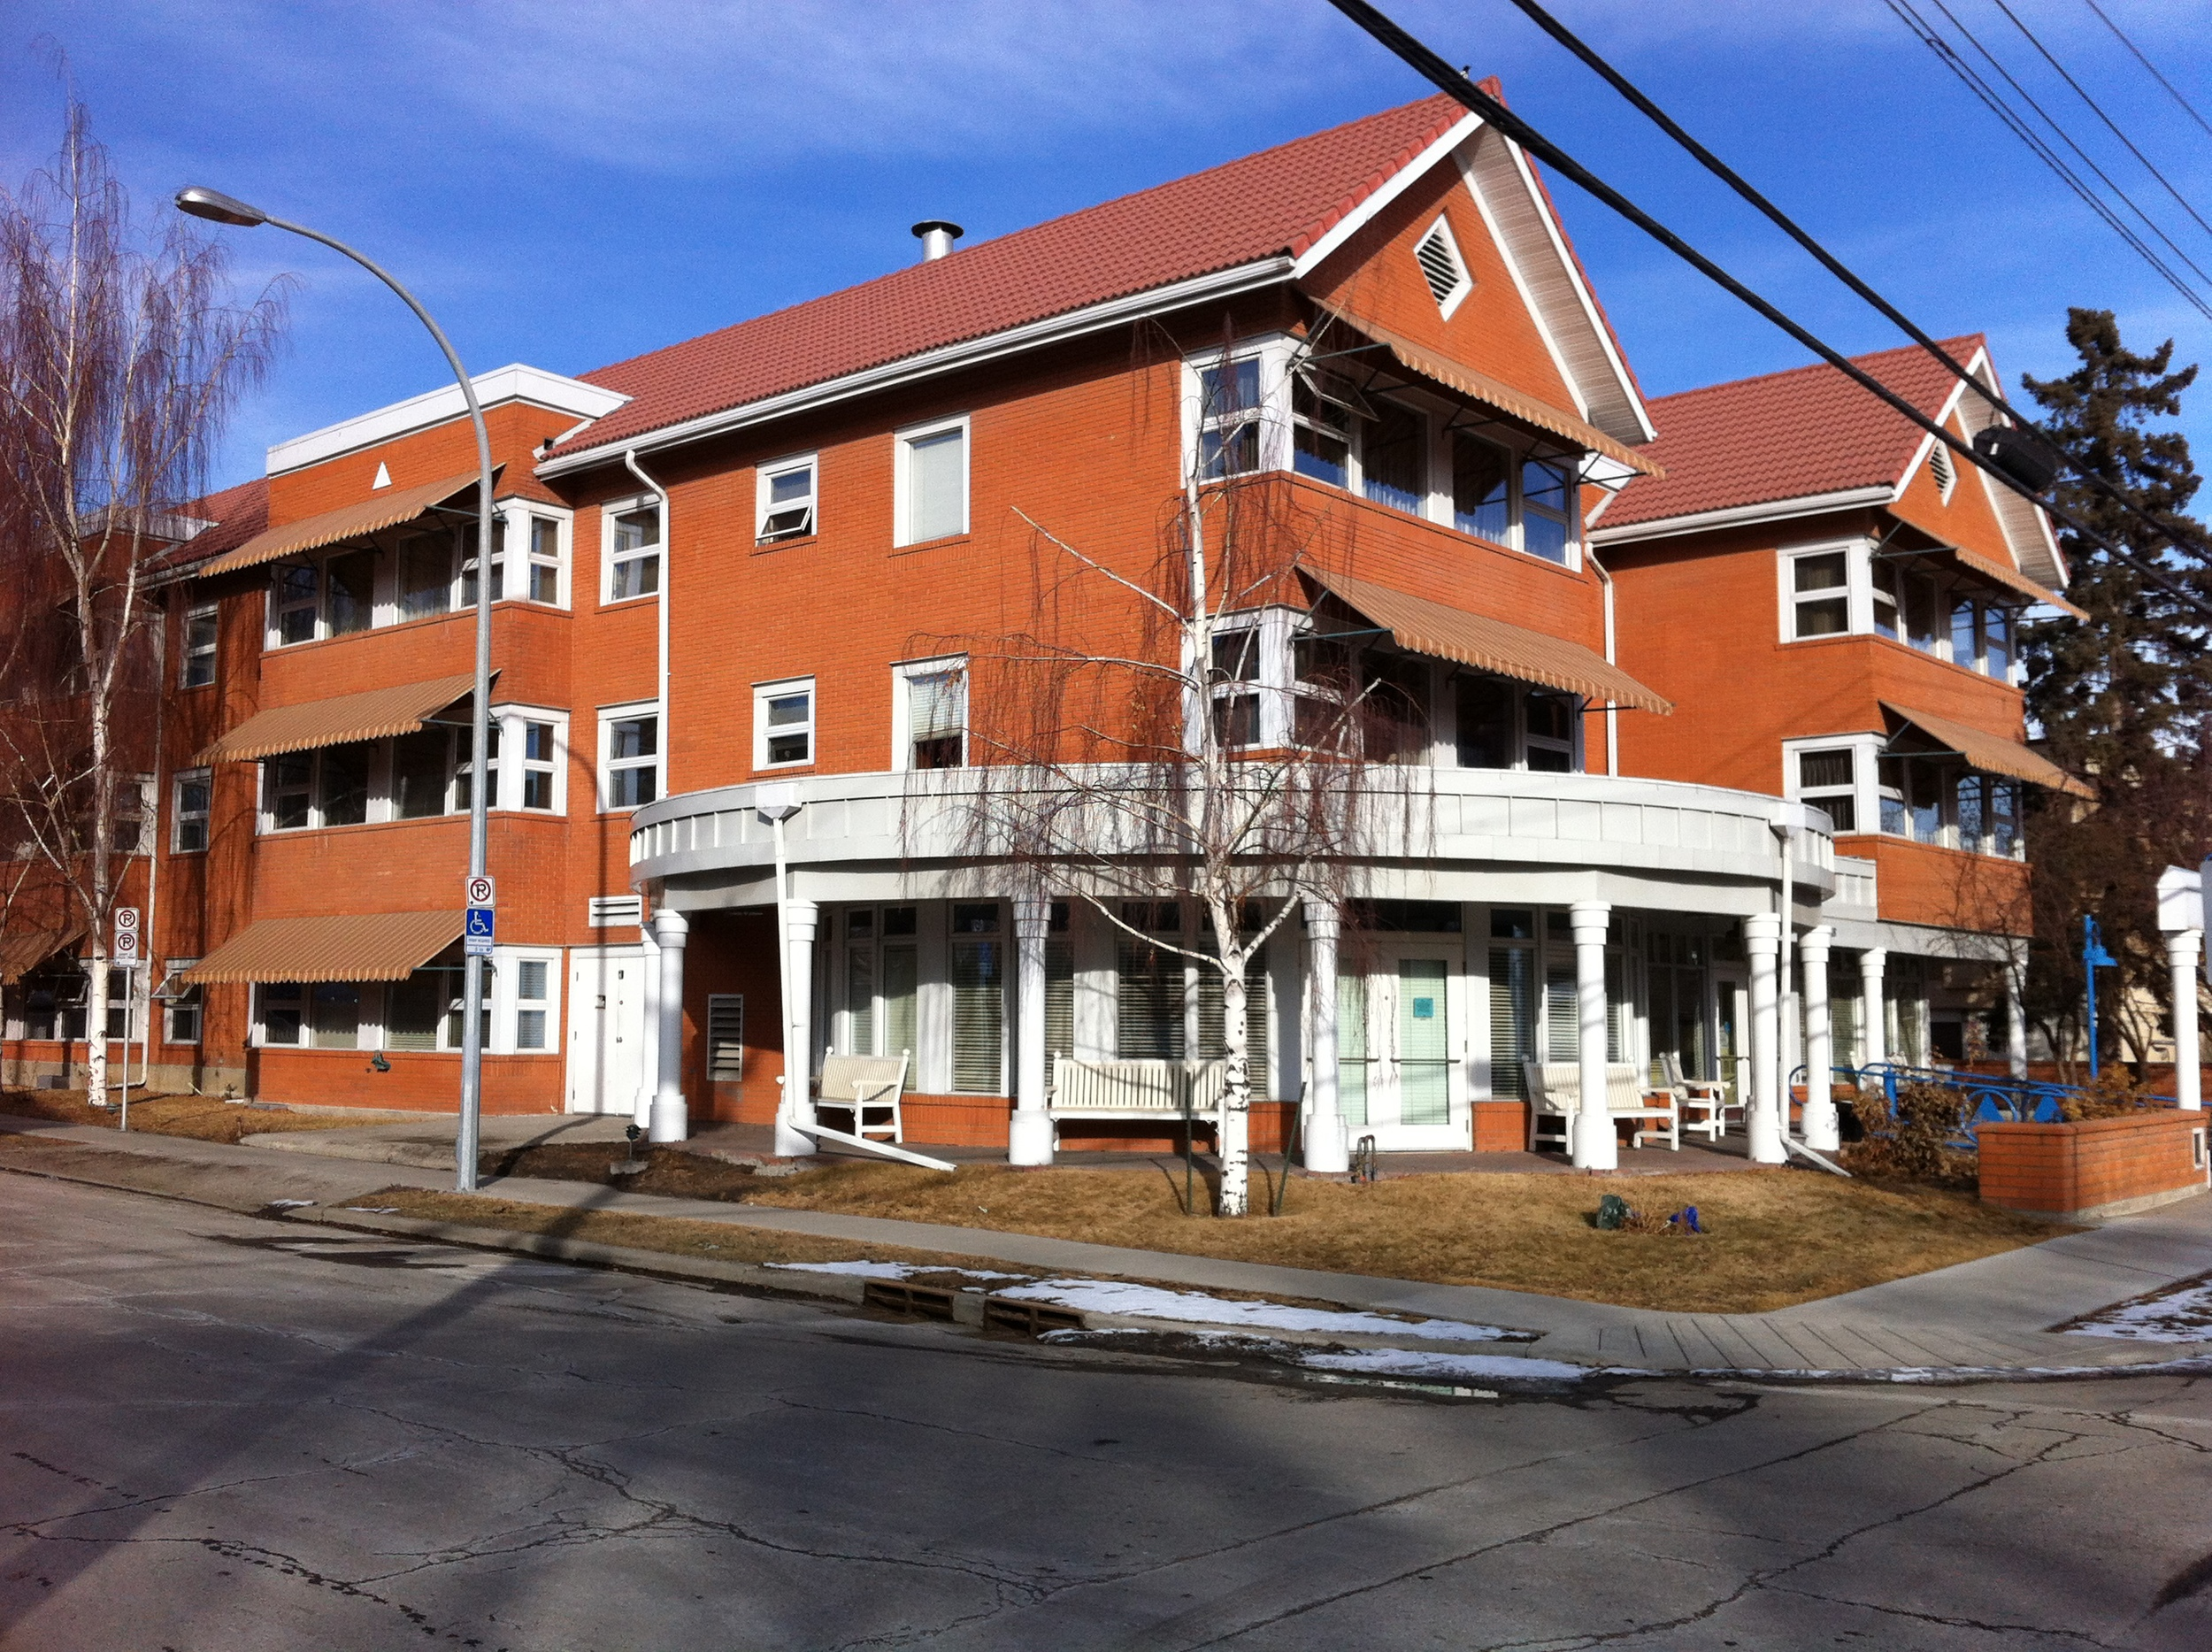 An example of assisted living complex in an established community that could be located next to Main Street as part of the community revitalization program.